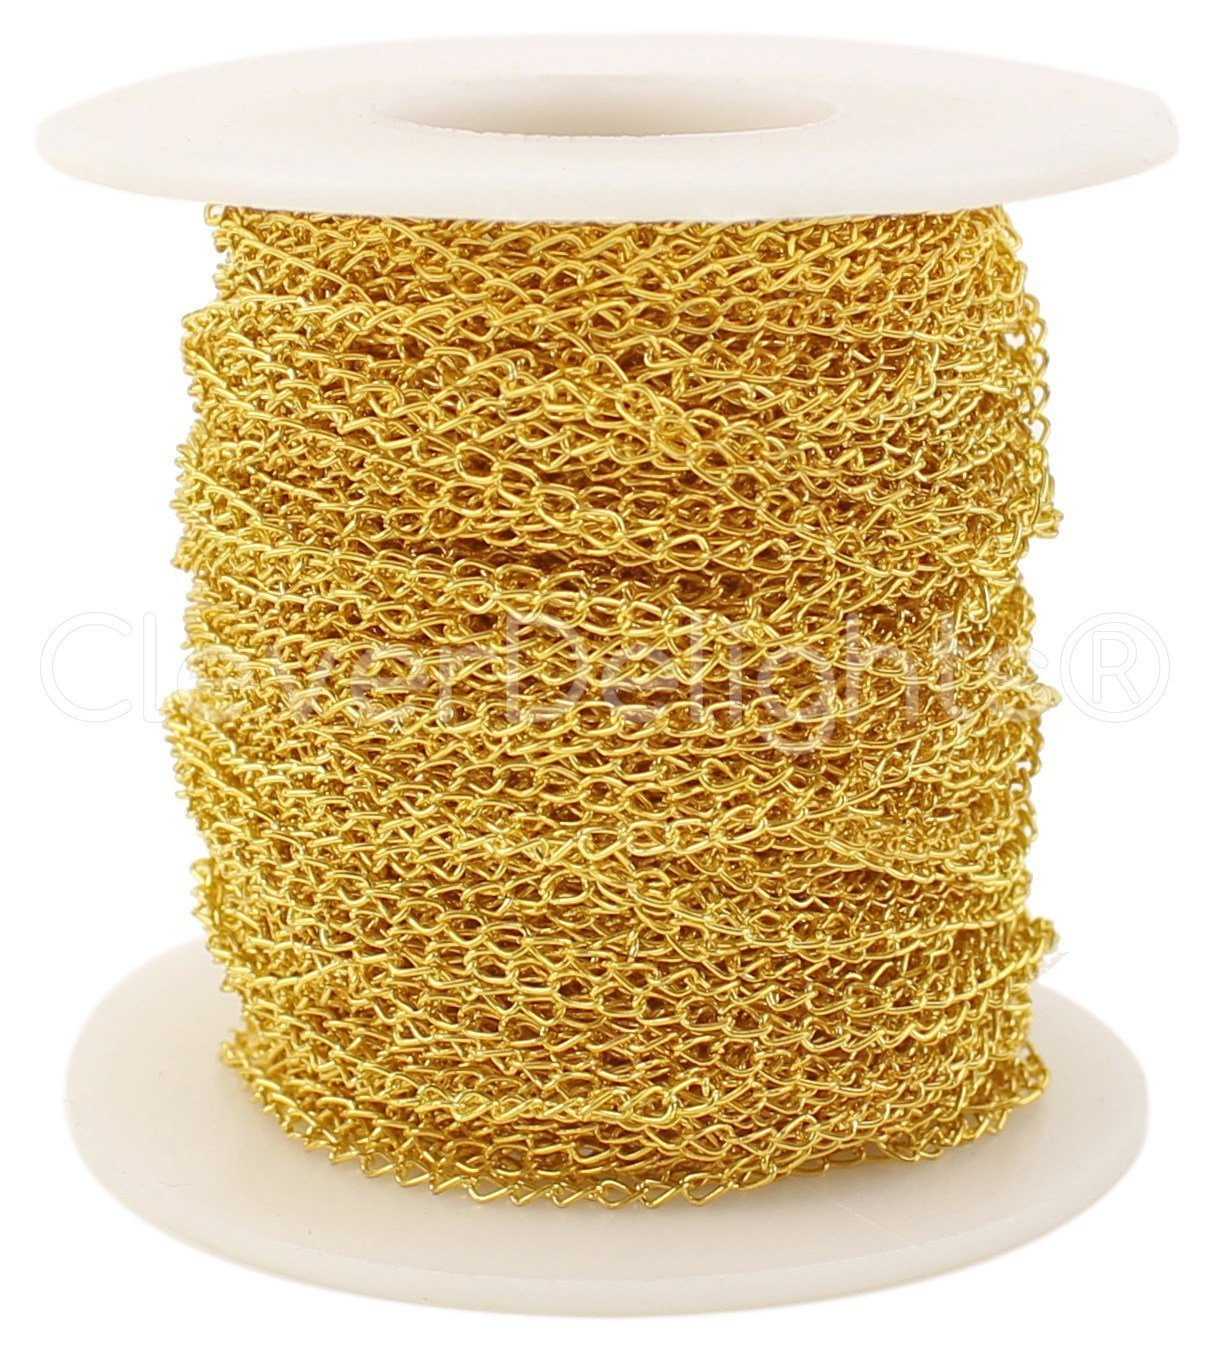 CleverDelights Curb Chain Spool - 2x3mm Link - Gold Color - 100 Feet